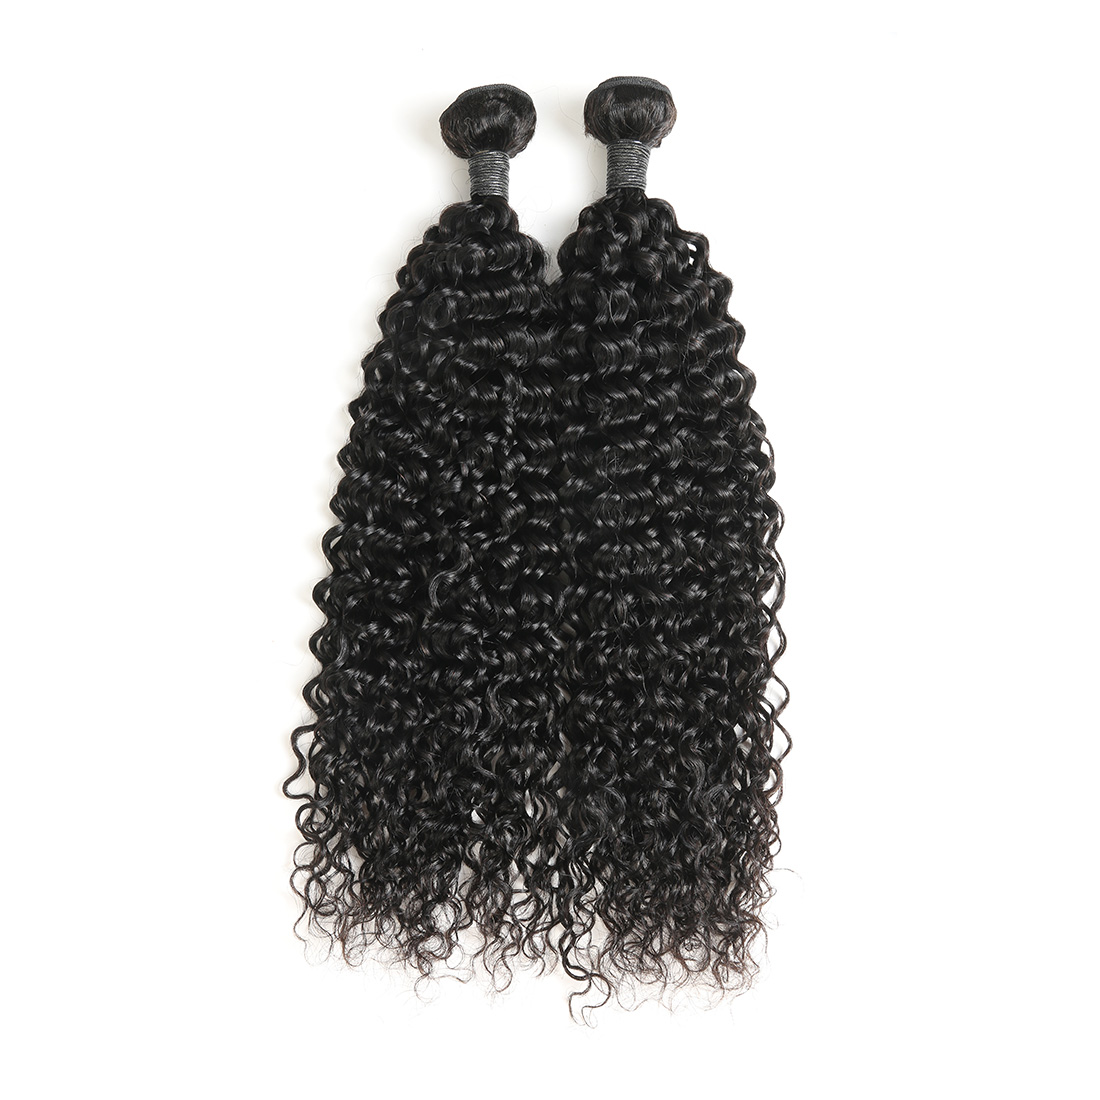 9A Brazilian Water Wave Human Virgin Hair Weave 4 Bundles With Lace Closure